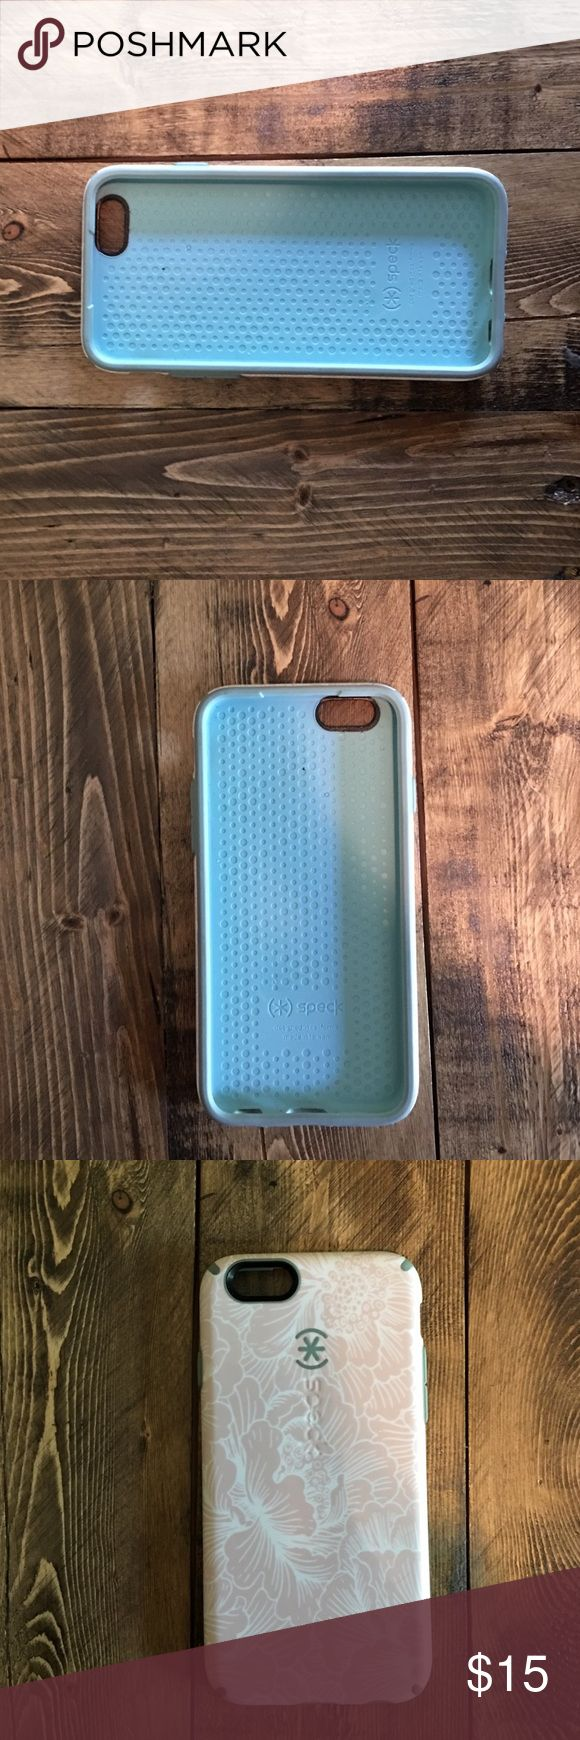 Speck iPhone 6 case Teal and pink iPhone 6 case - great condition Accessories Phone Cases